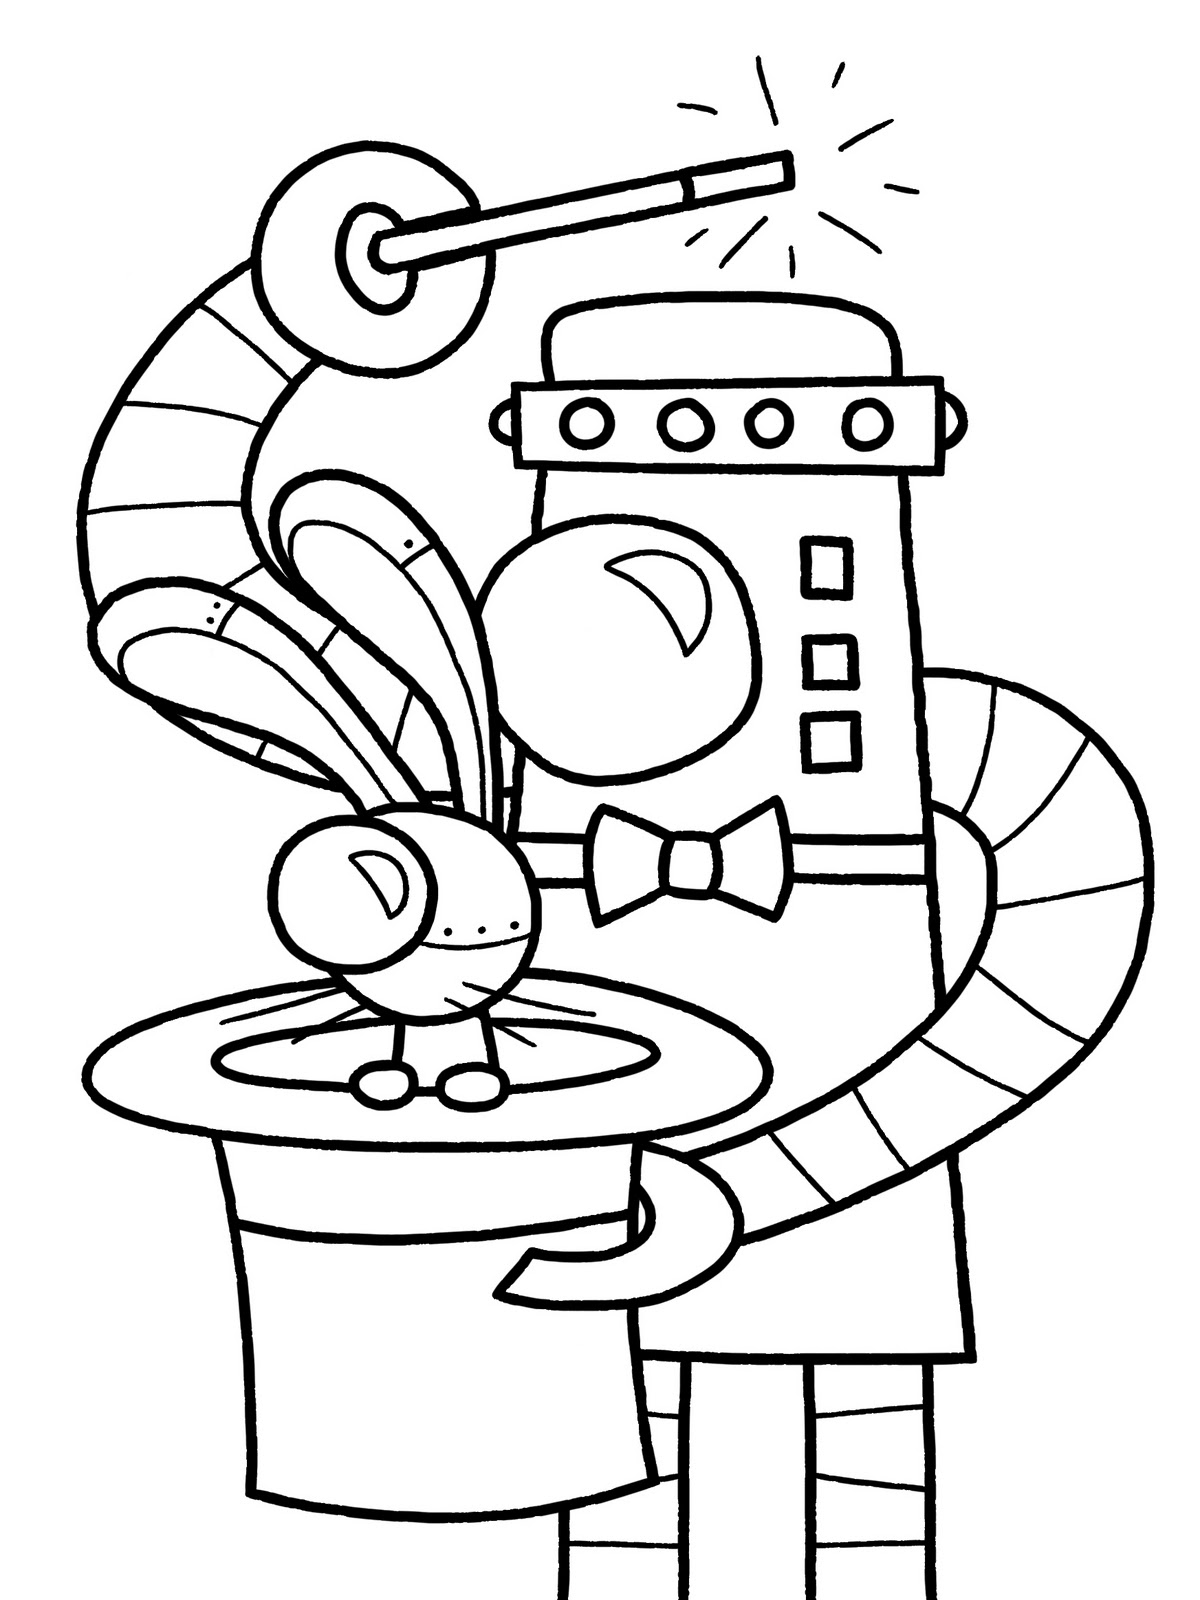 Free printable coloring pages robots - Robot Coloring Pages On Pinterest Coloring Free Printable Coloring Free Printable Pictures Coloring Pages For Kids